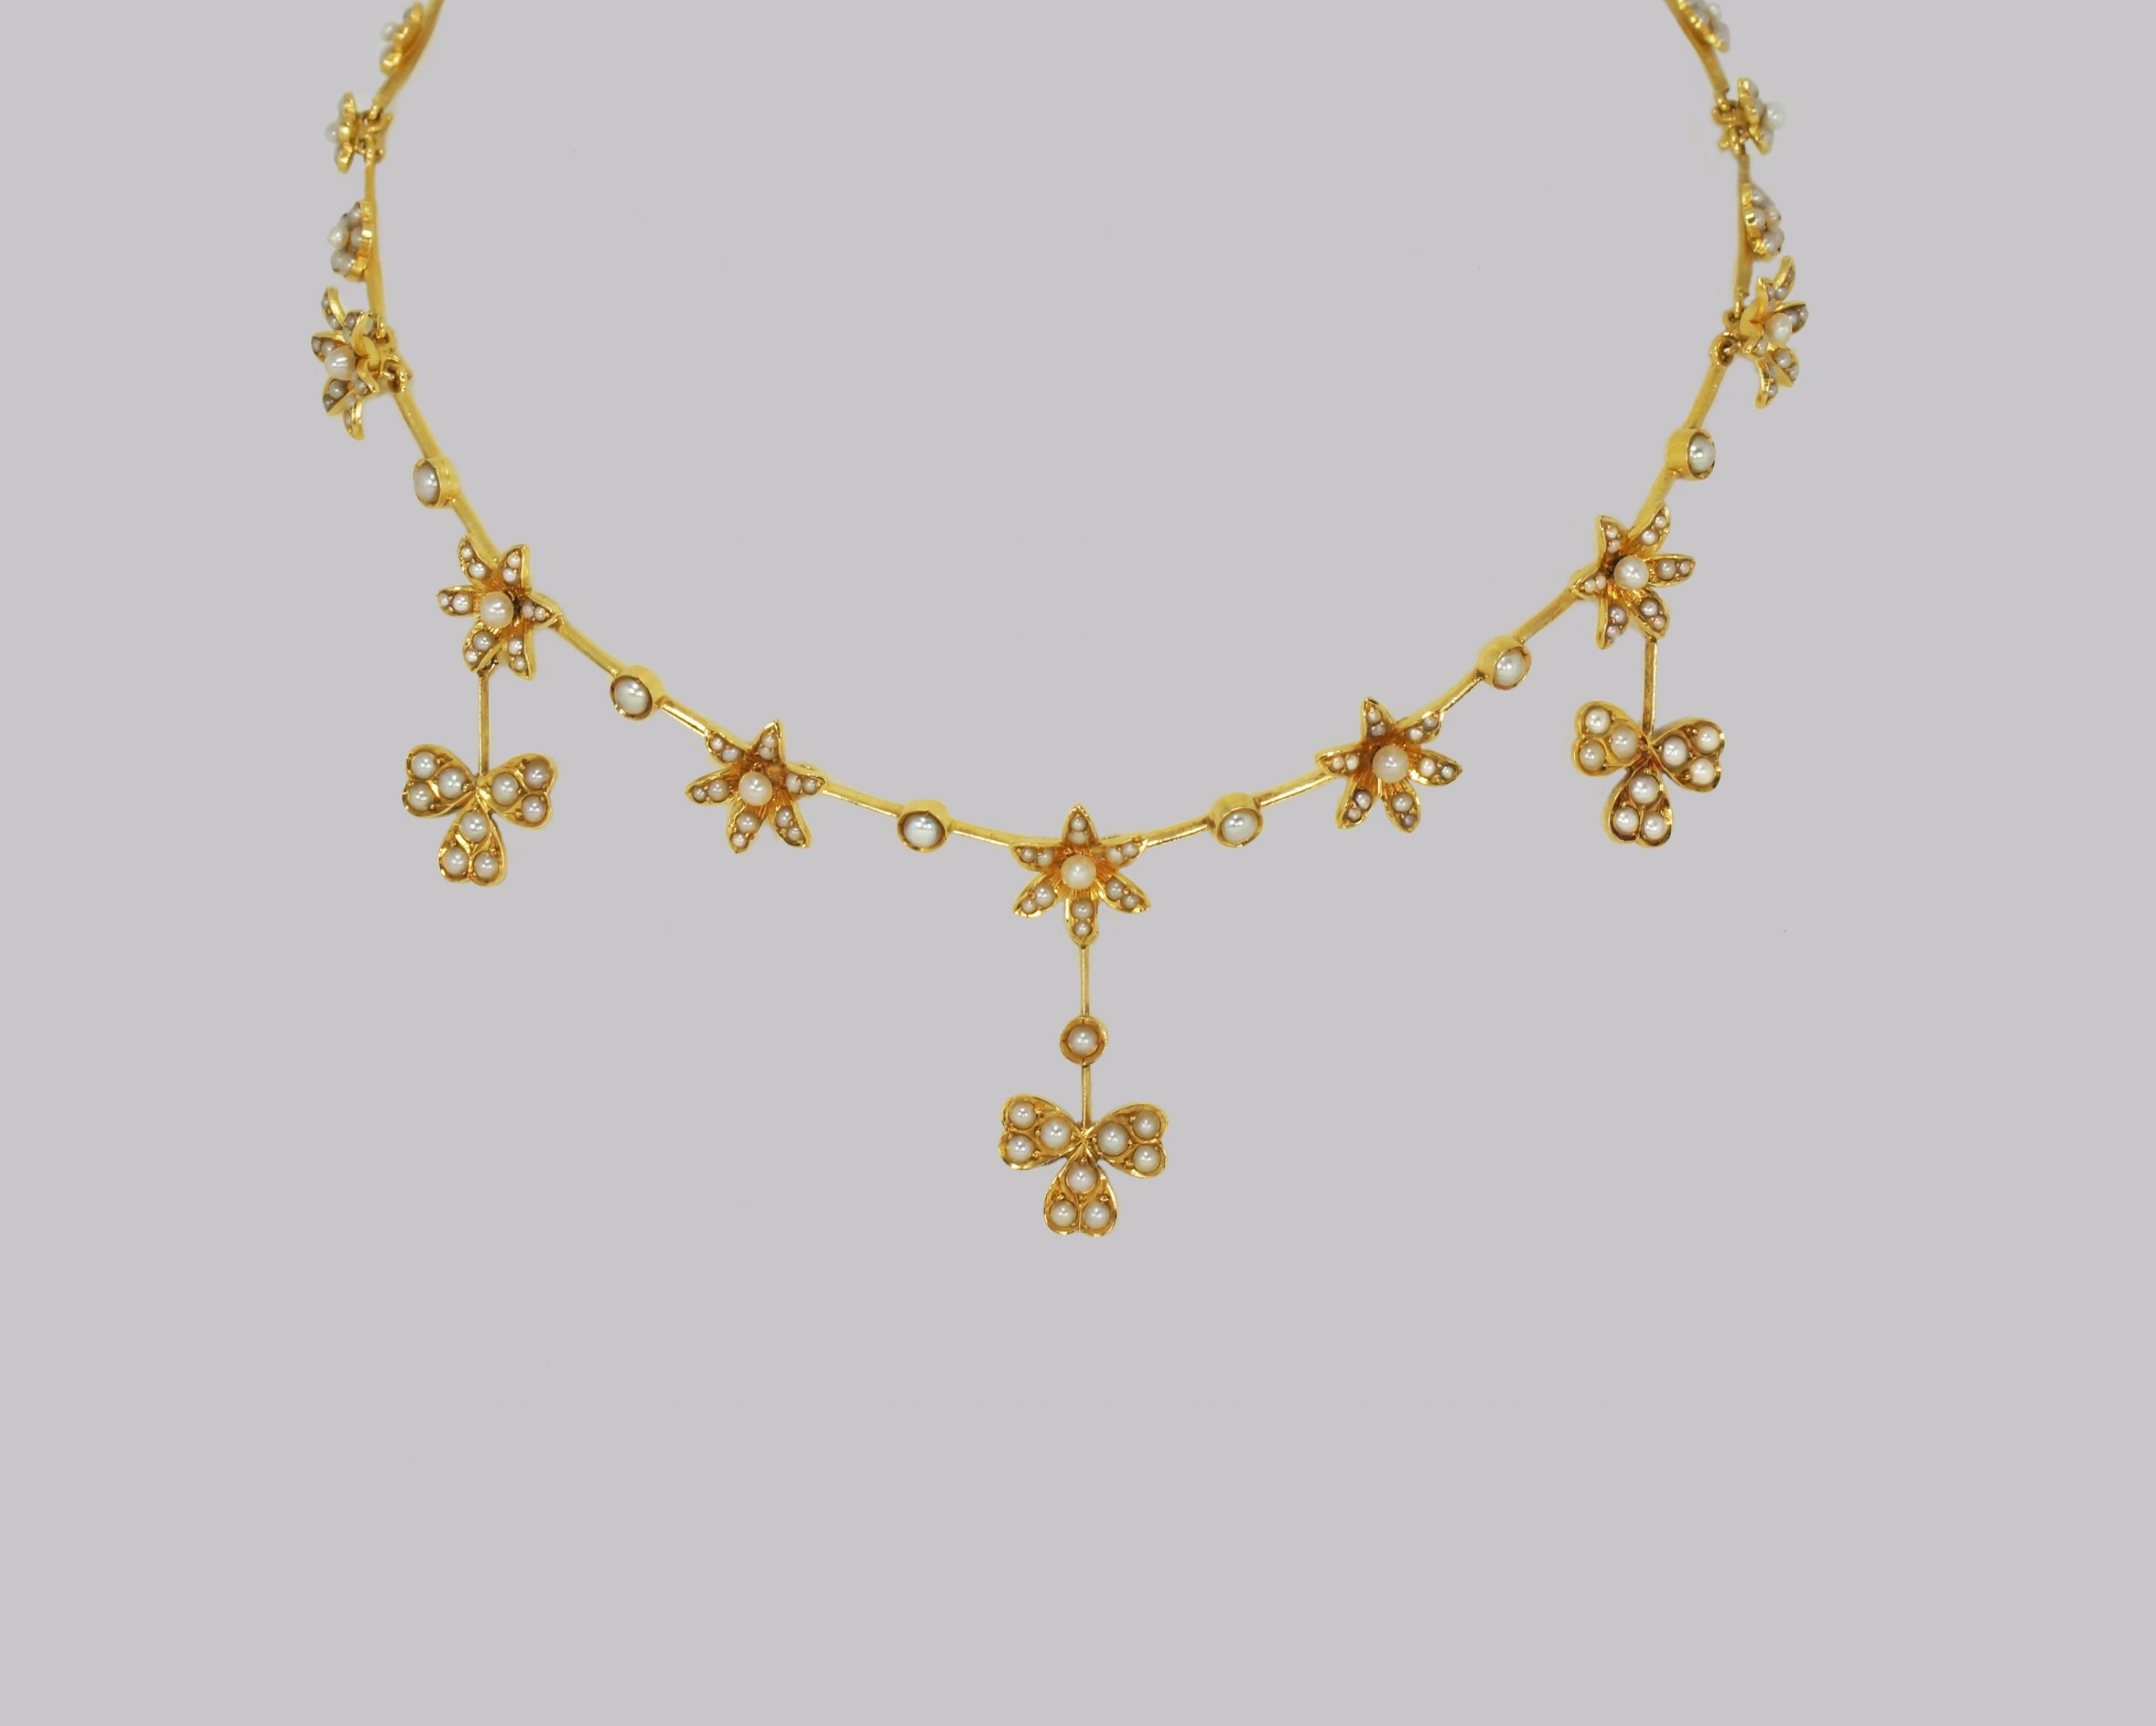 antique seed pearl necklace 15ct gold three leaf clover edwardian necklace circa 1910